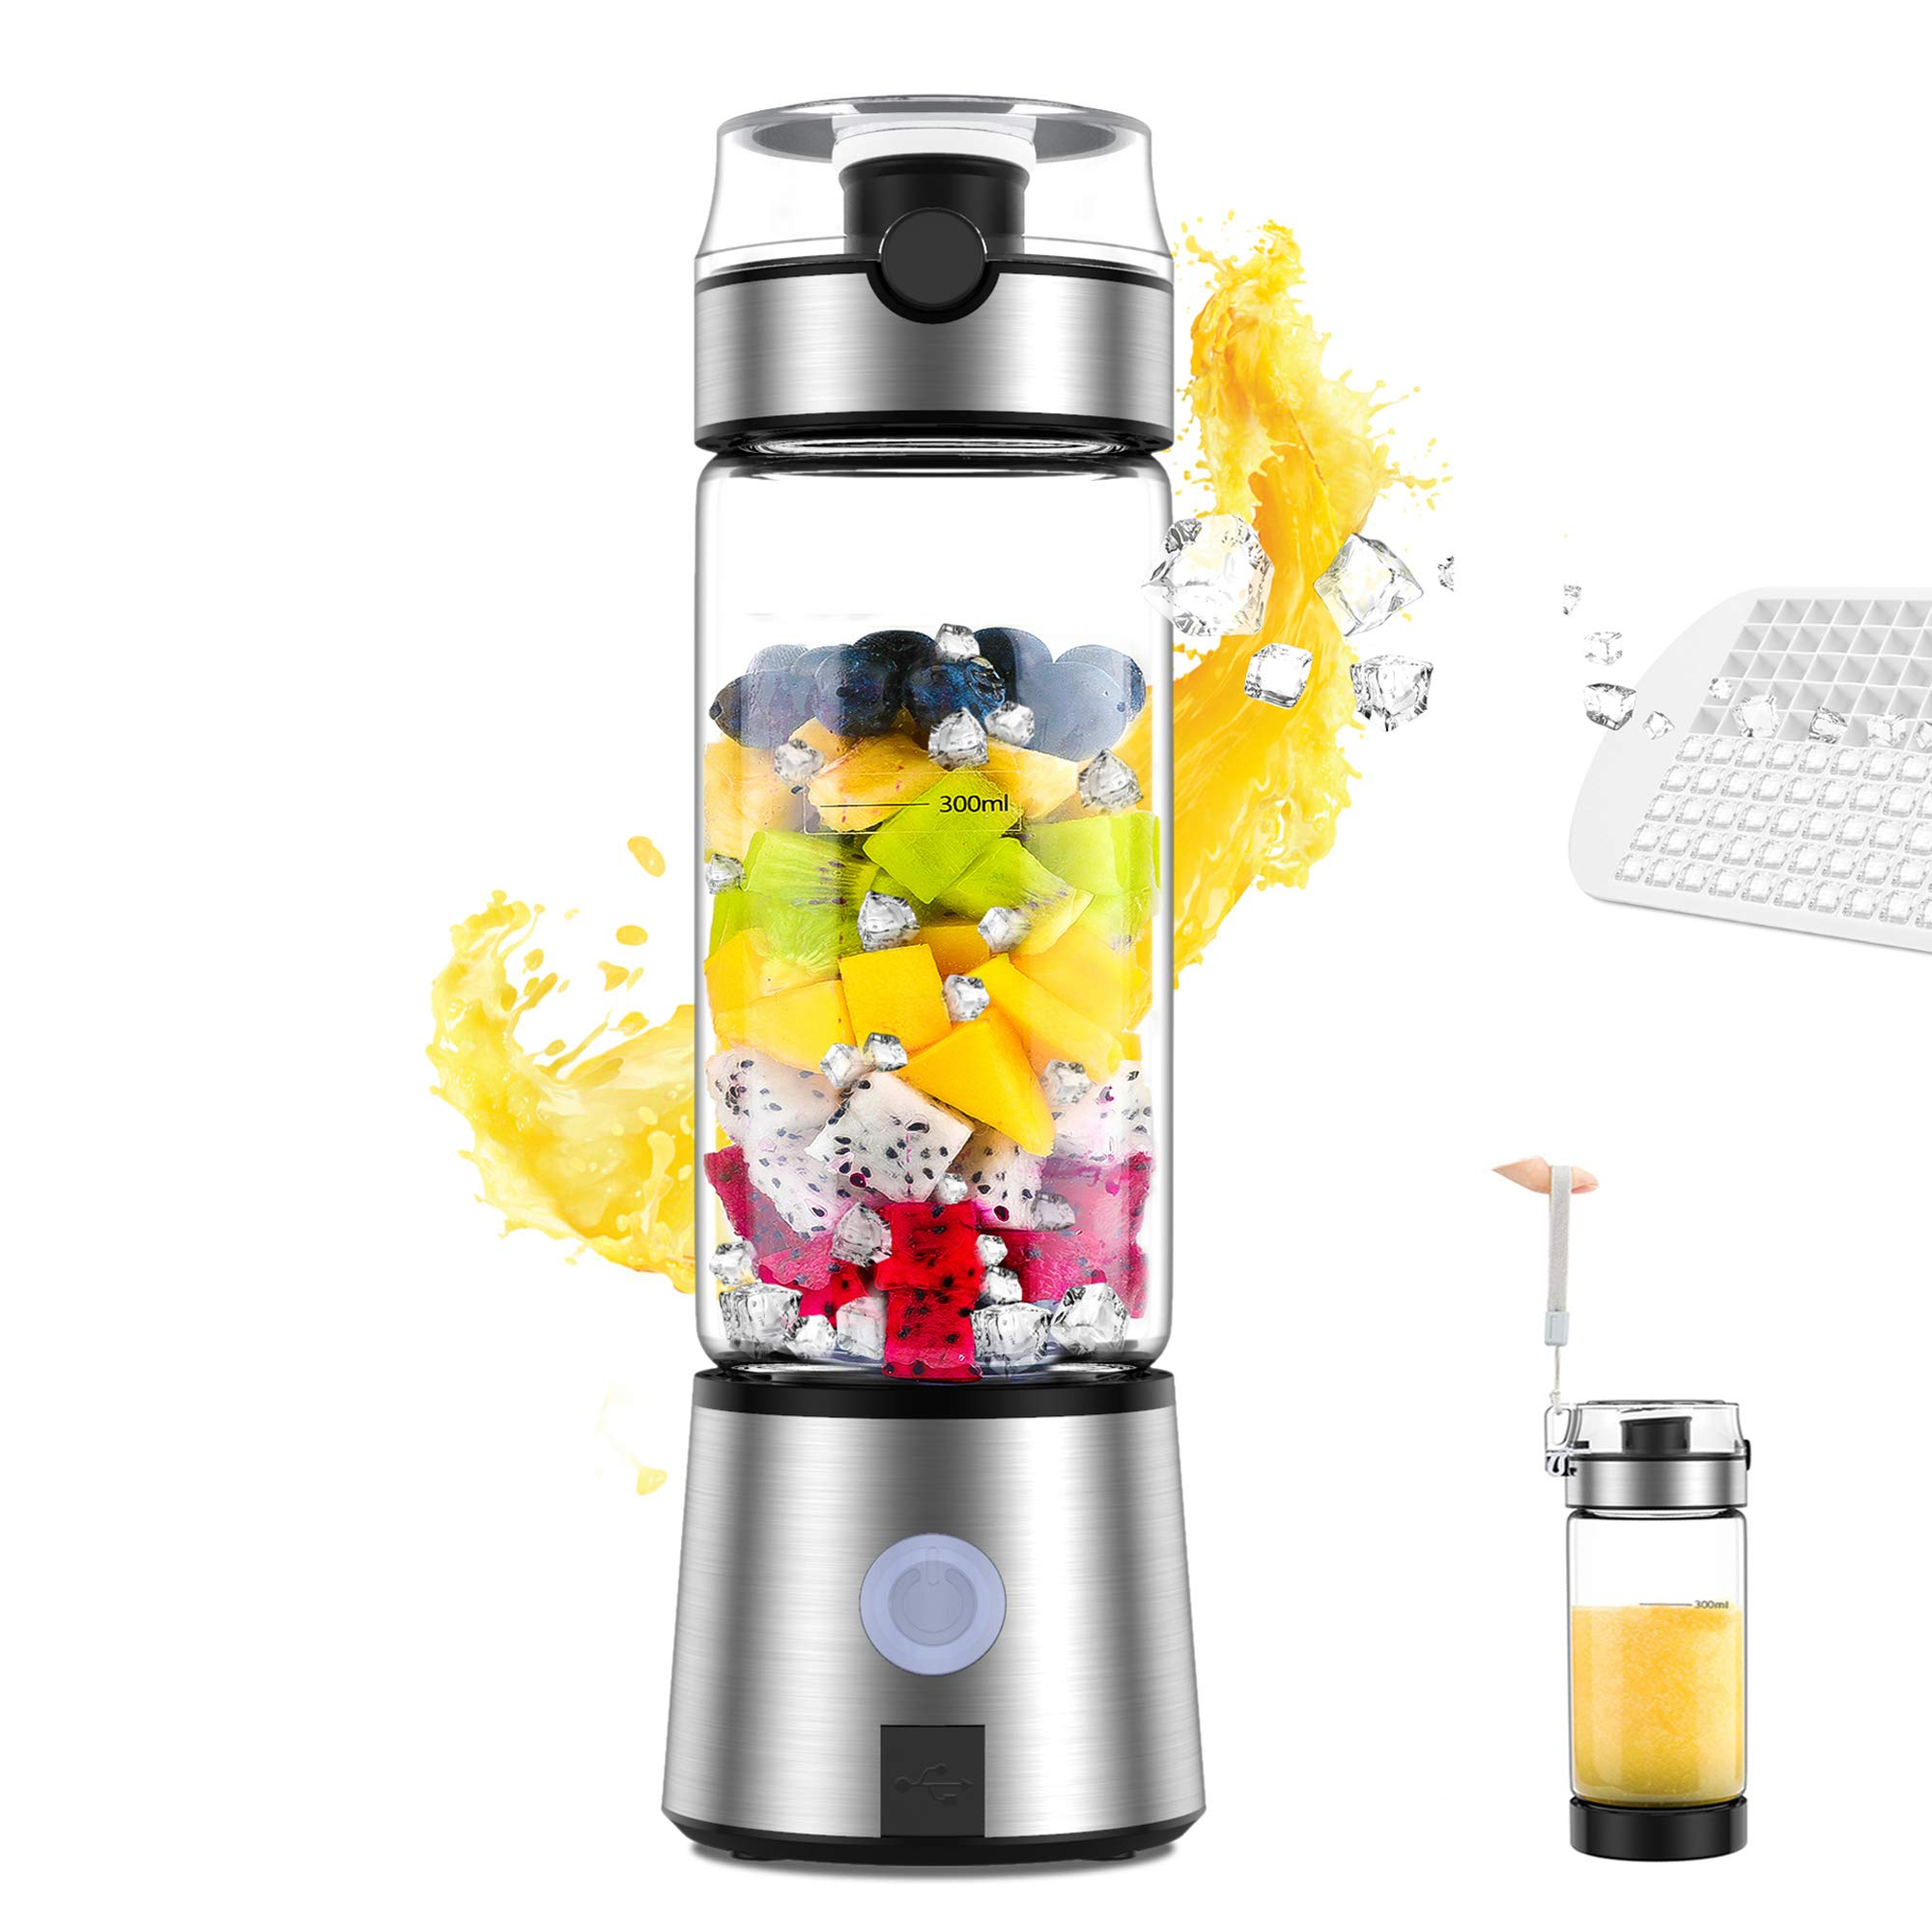 Portable Blender Smoothie Blender Personal Size Blender USB Rechargeable Shakes and Smoothies